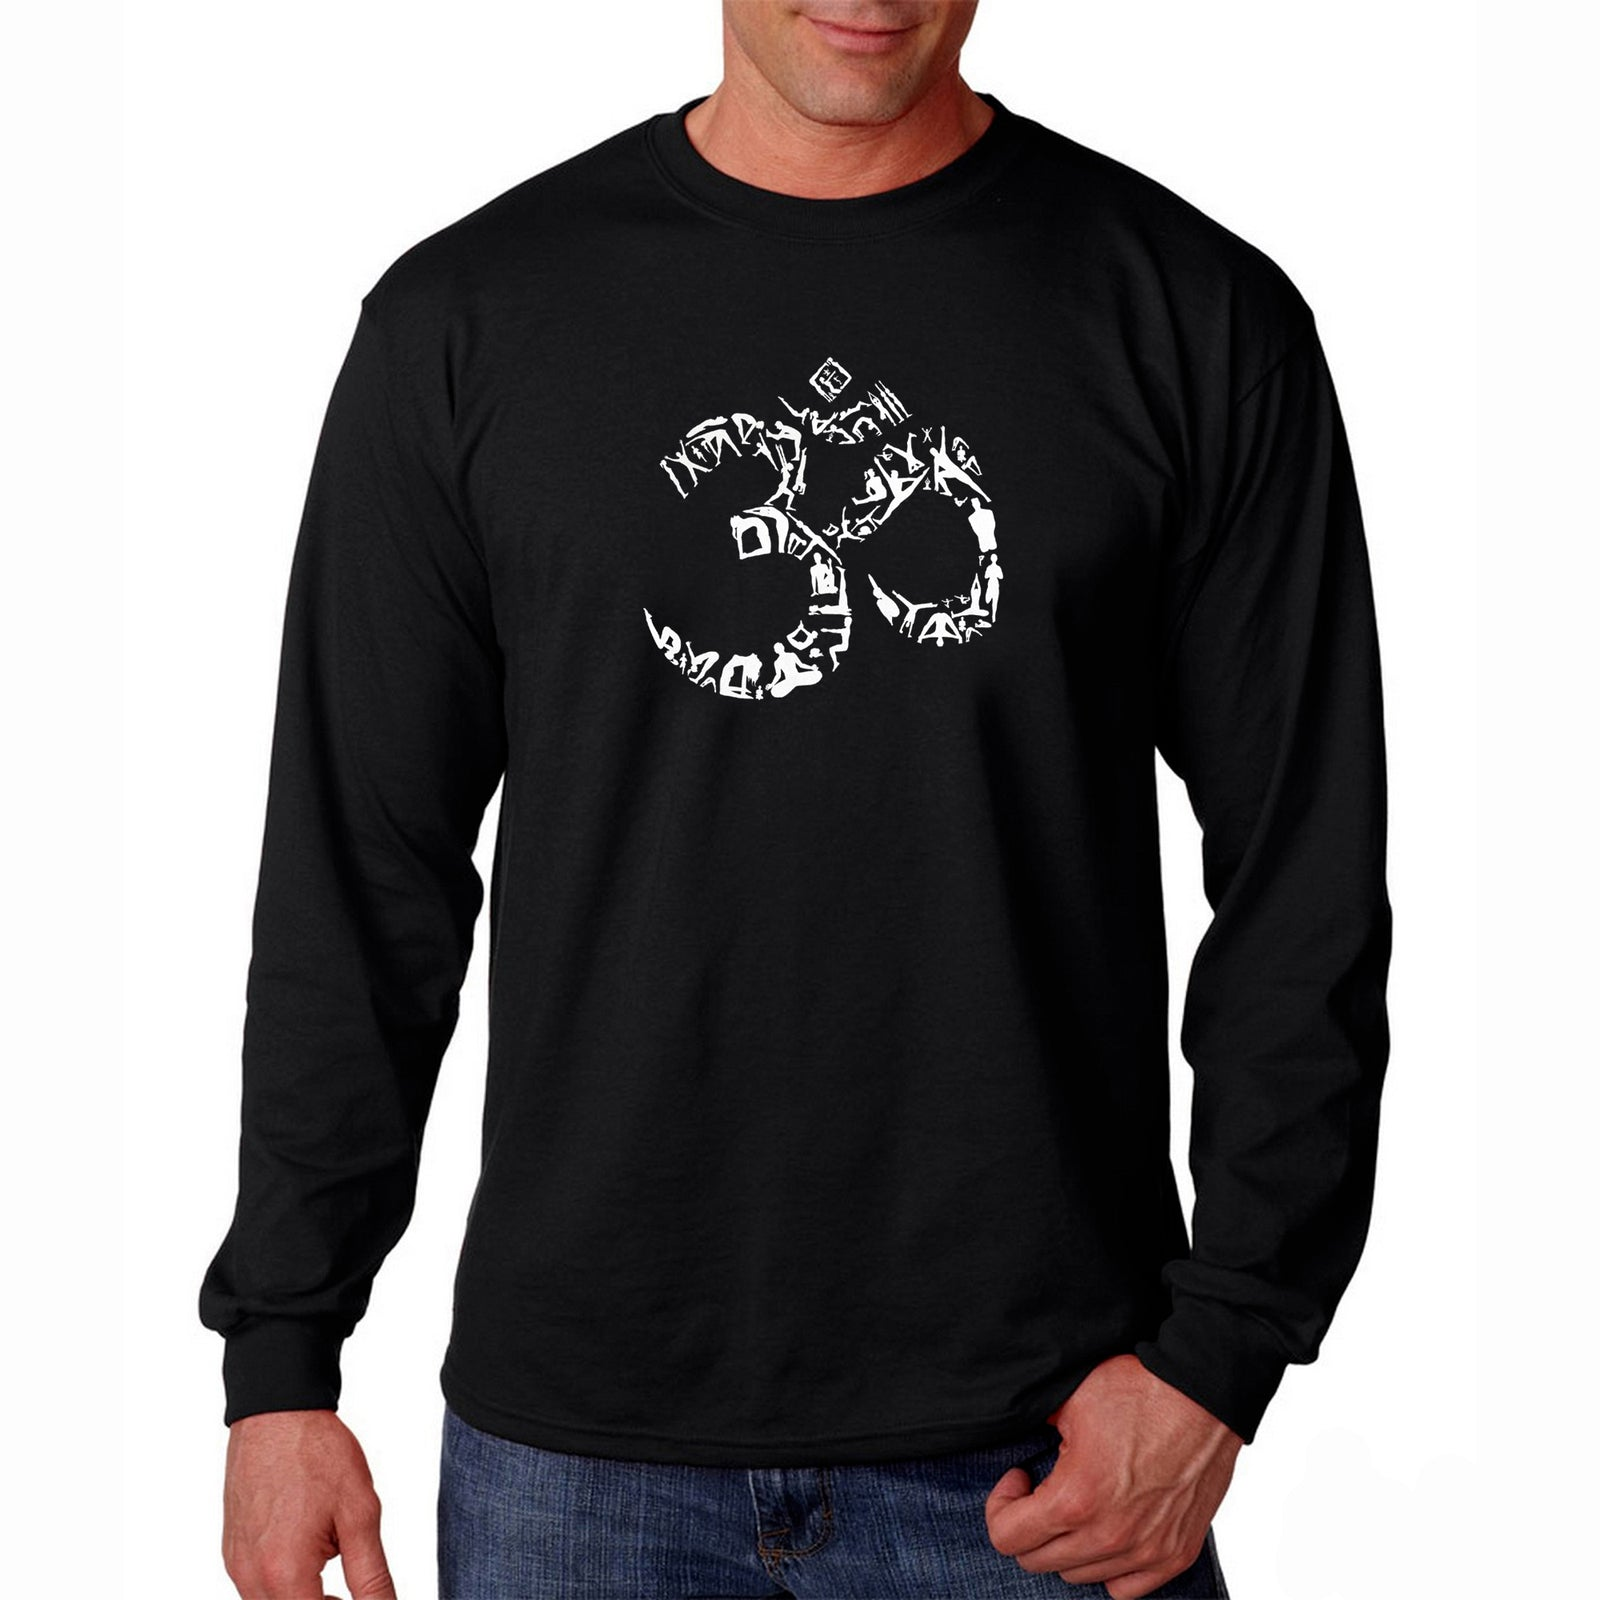 Men's Long Sleeve T-shirt - THE OM SYMBOL OUT OF YOGA POSES